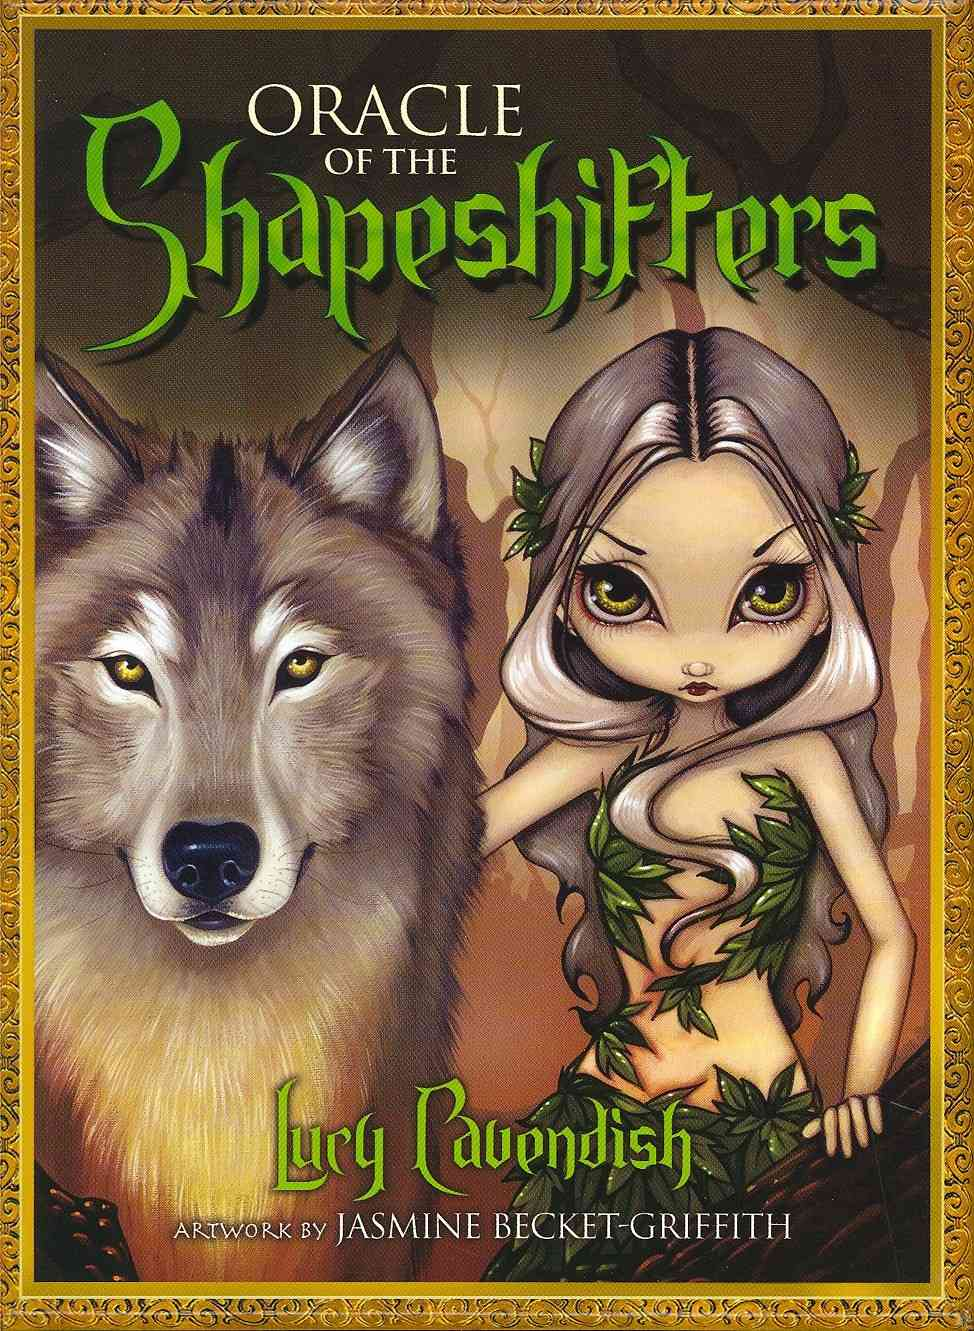 Oracle of the Shapeshifters By Cavendish, Lucy/ Becket-Griffith, Jasmine (ILT)